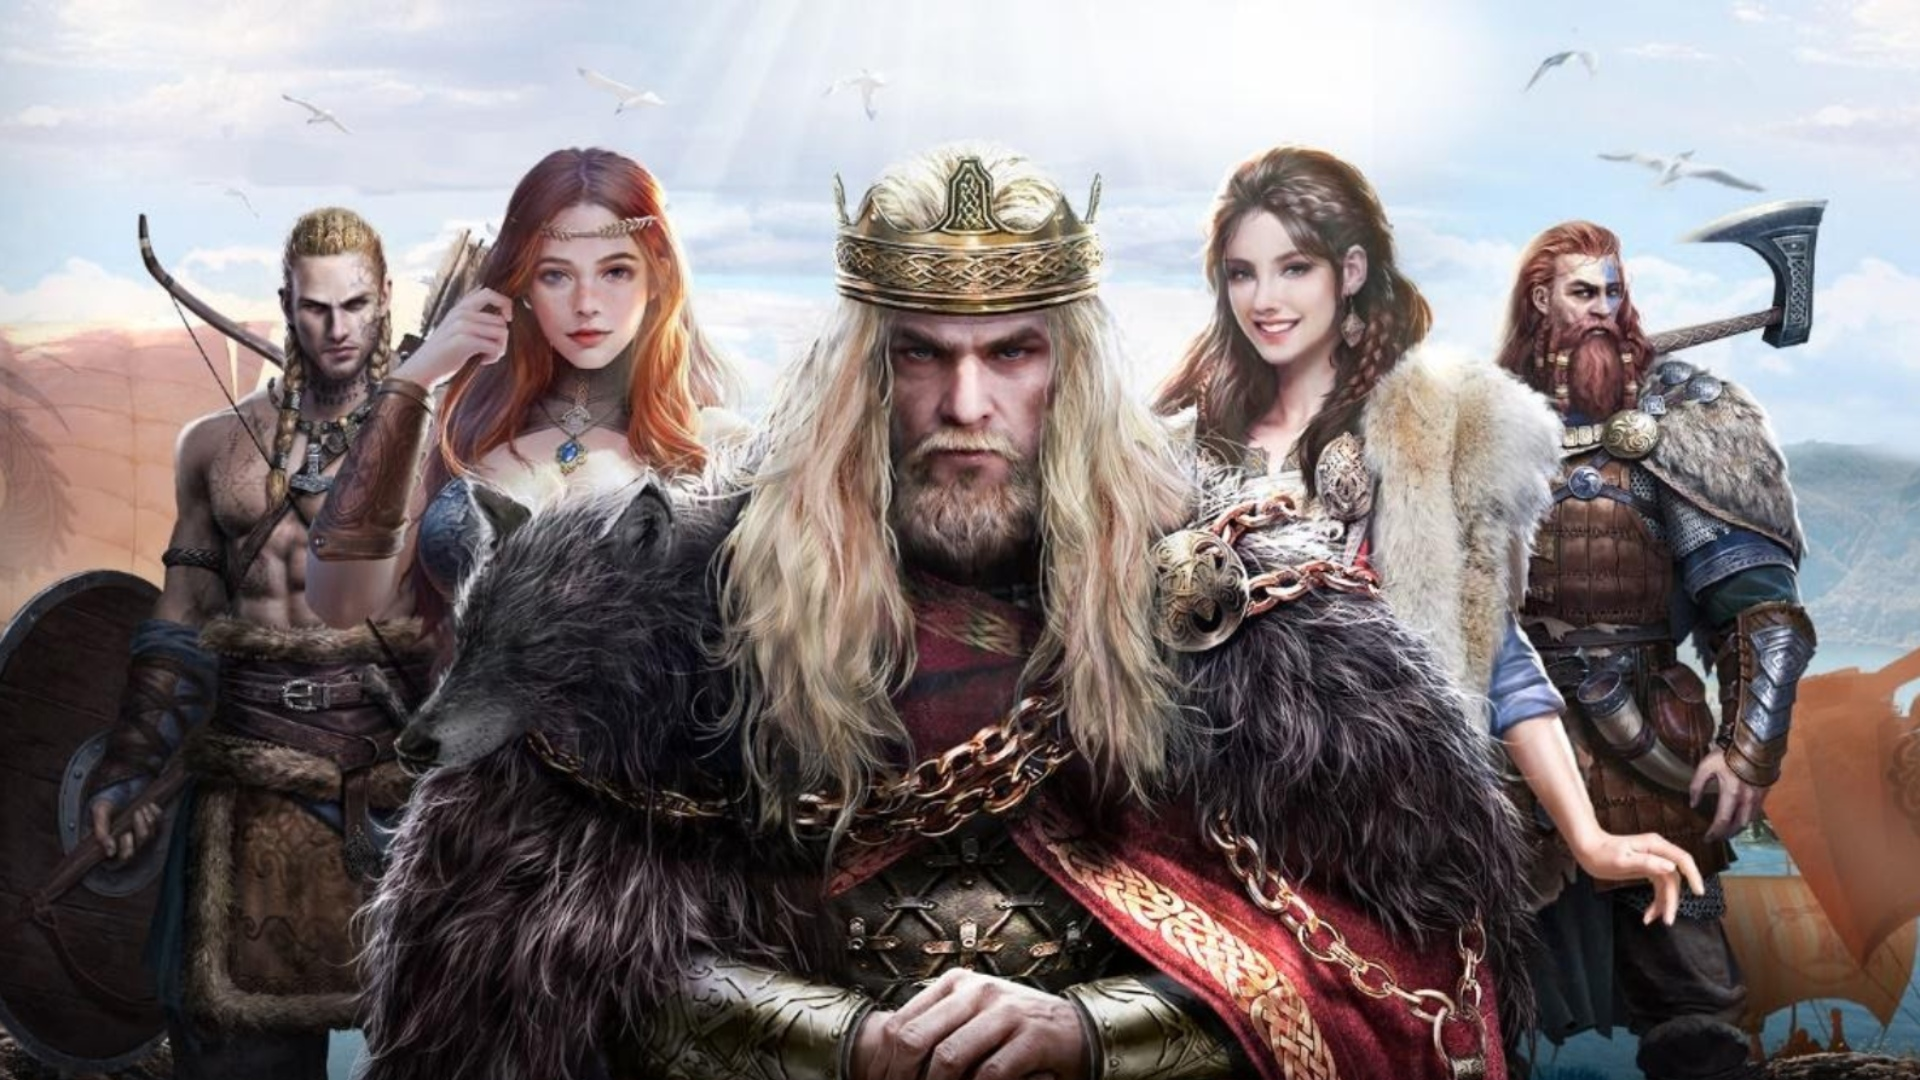 Simure Vikings is an RPG where you play as a power-hungry jarl